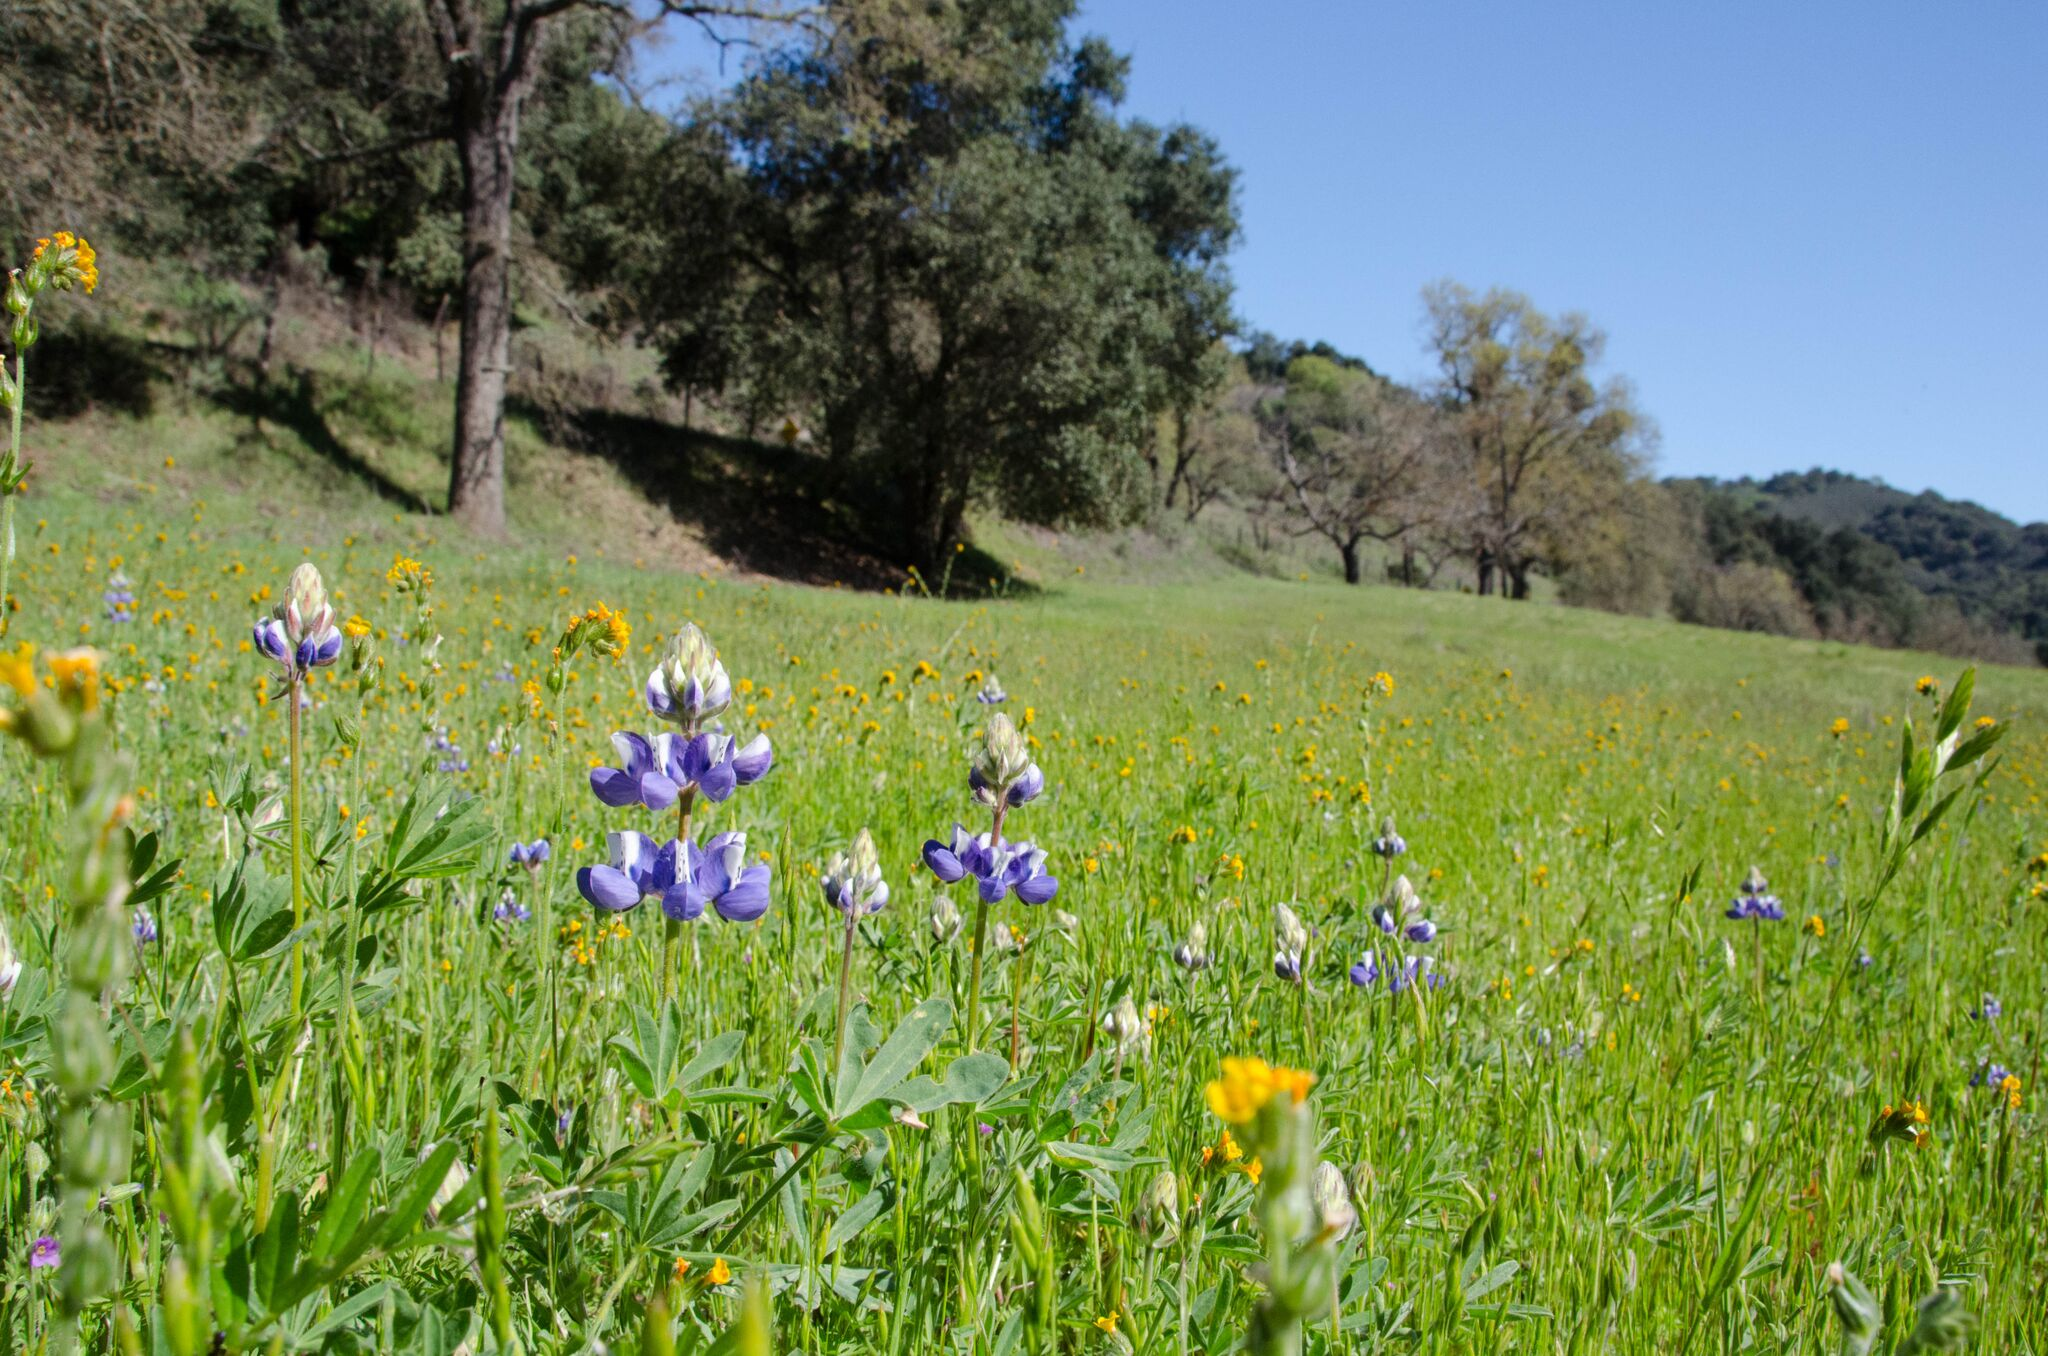 Llagas-Creek-Loop-Trail_Rancho-Canada-del-Oro-Open-Space-Preserve_Cassie-Kifer-6_preview